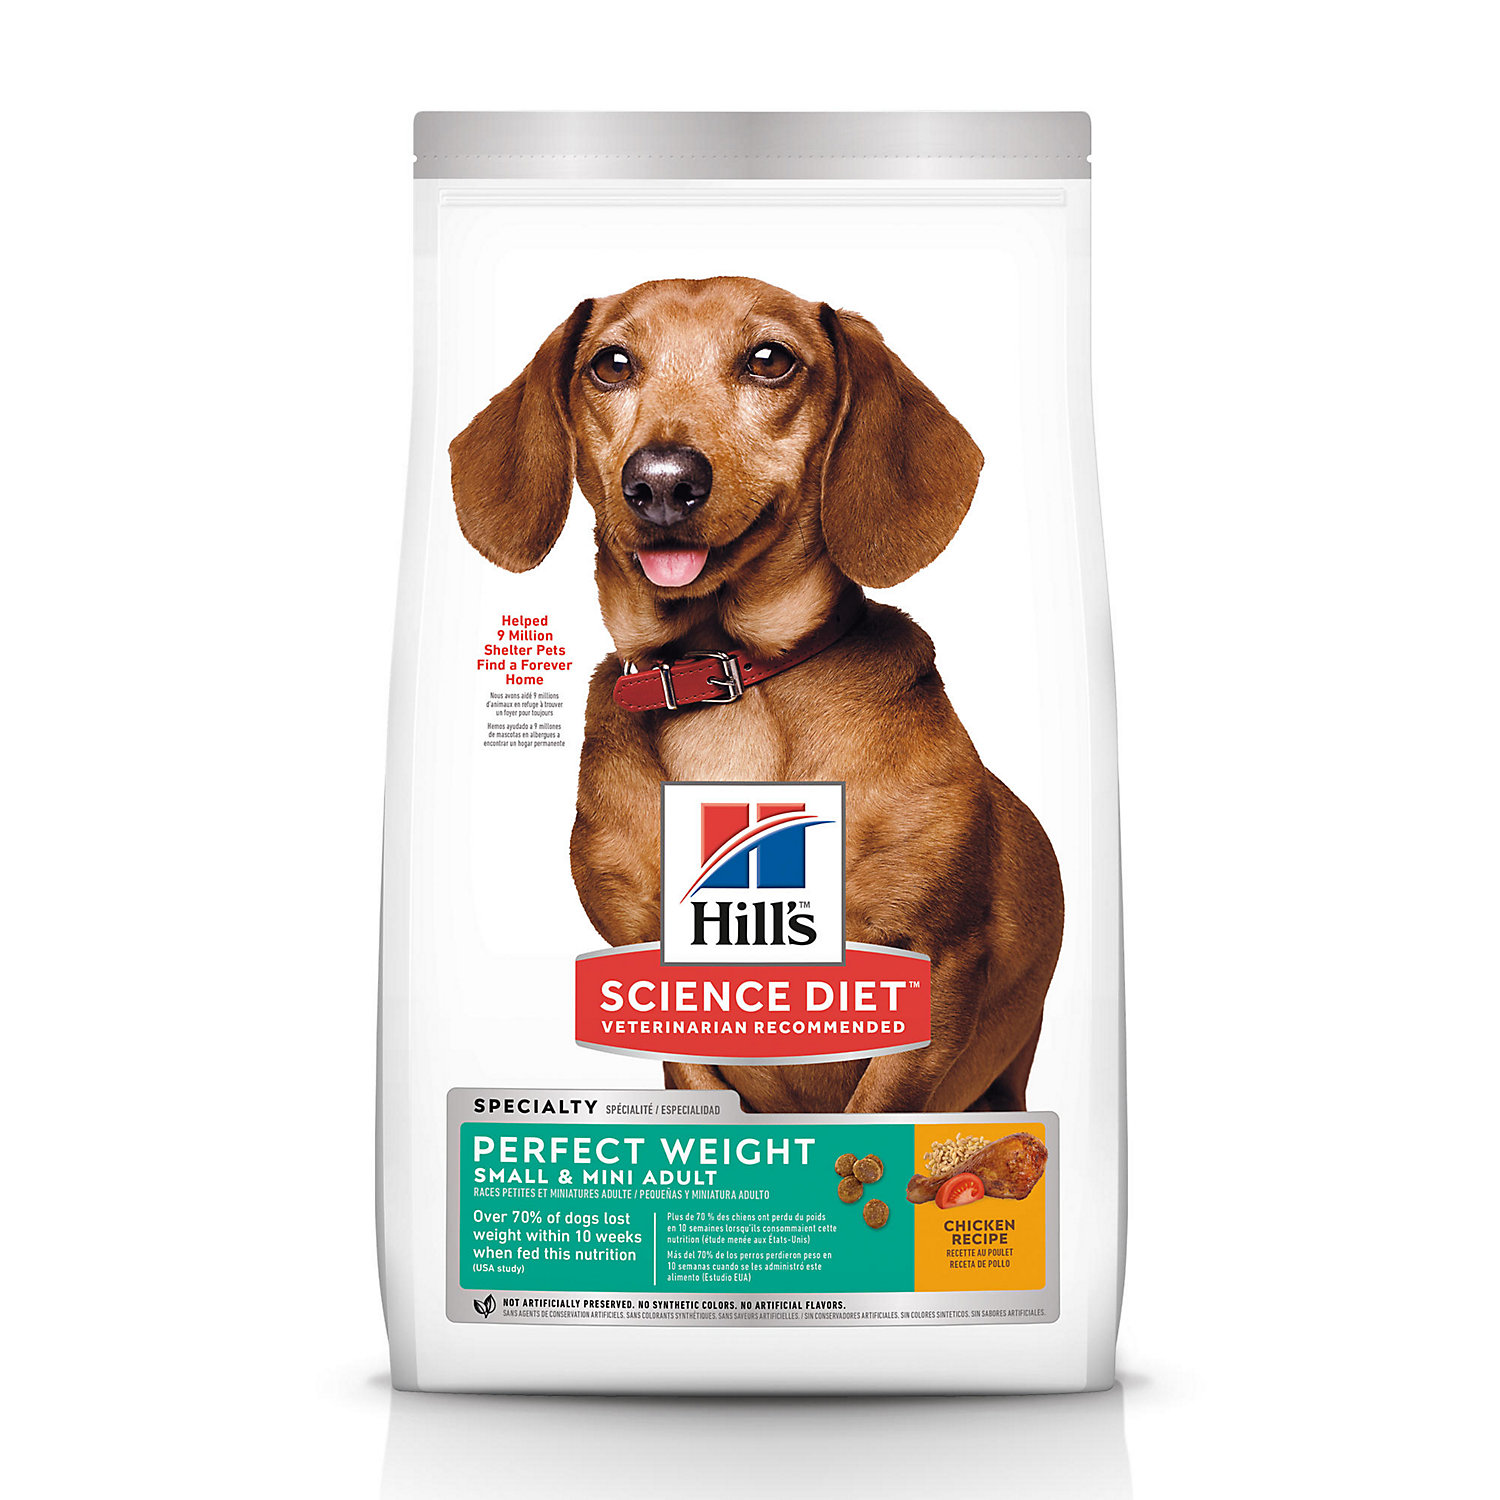 Hills Science Diet Perfect Weight Small Toy Breed Adult Dry Dog Food 15 Lbs.